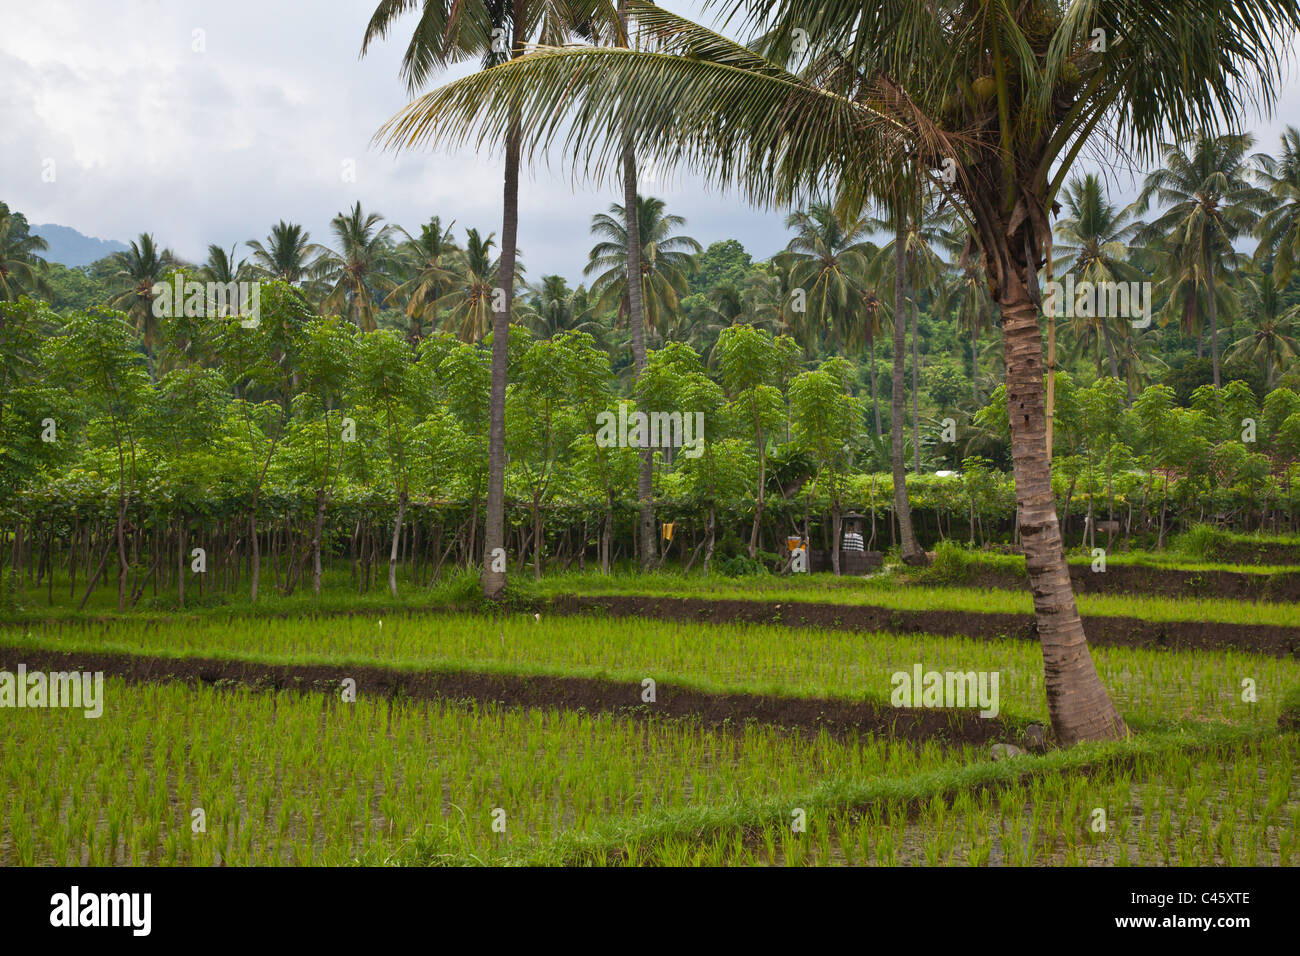 CASSAVA (Manihot esculenta), RICE, and COCONUT TREES grow in a rich agriculture valley near PEMUTERAN - BALI, INDONESIA - Stock Image